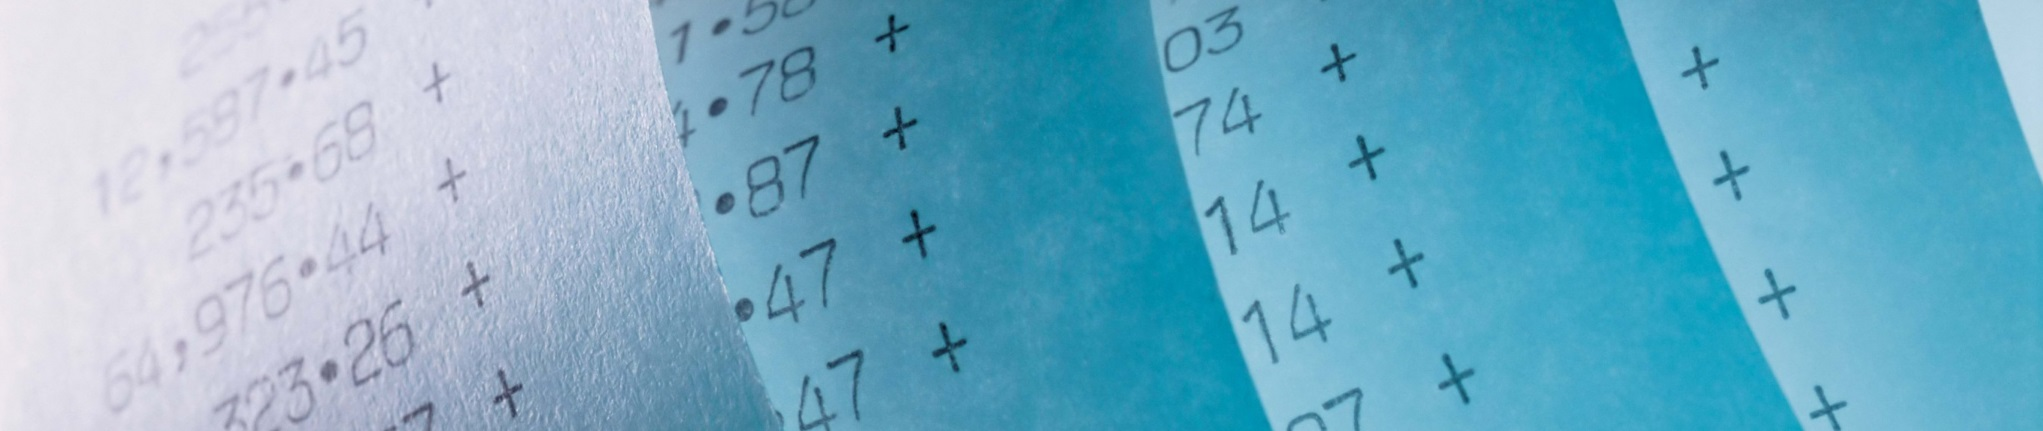 paper_roll_numbers2